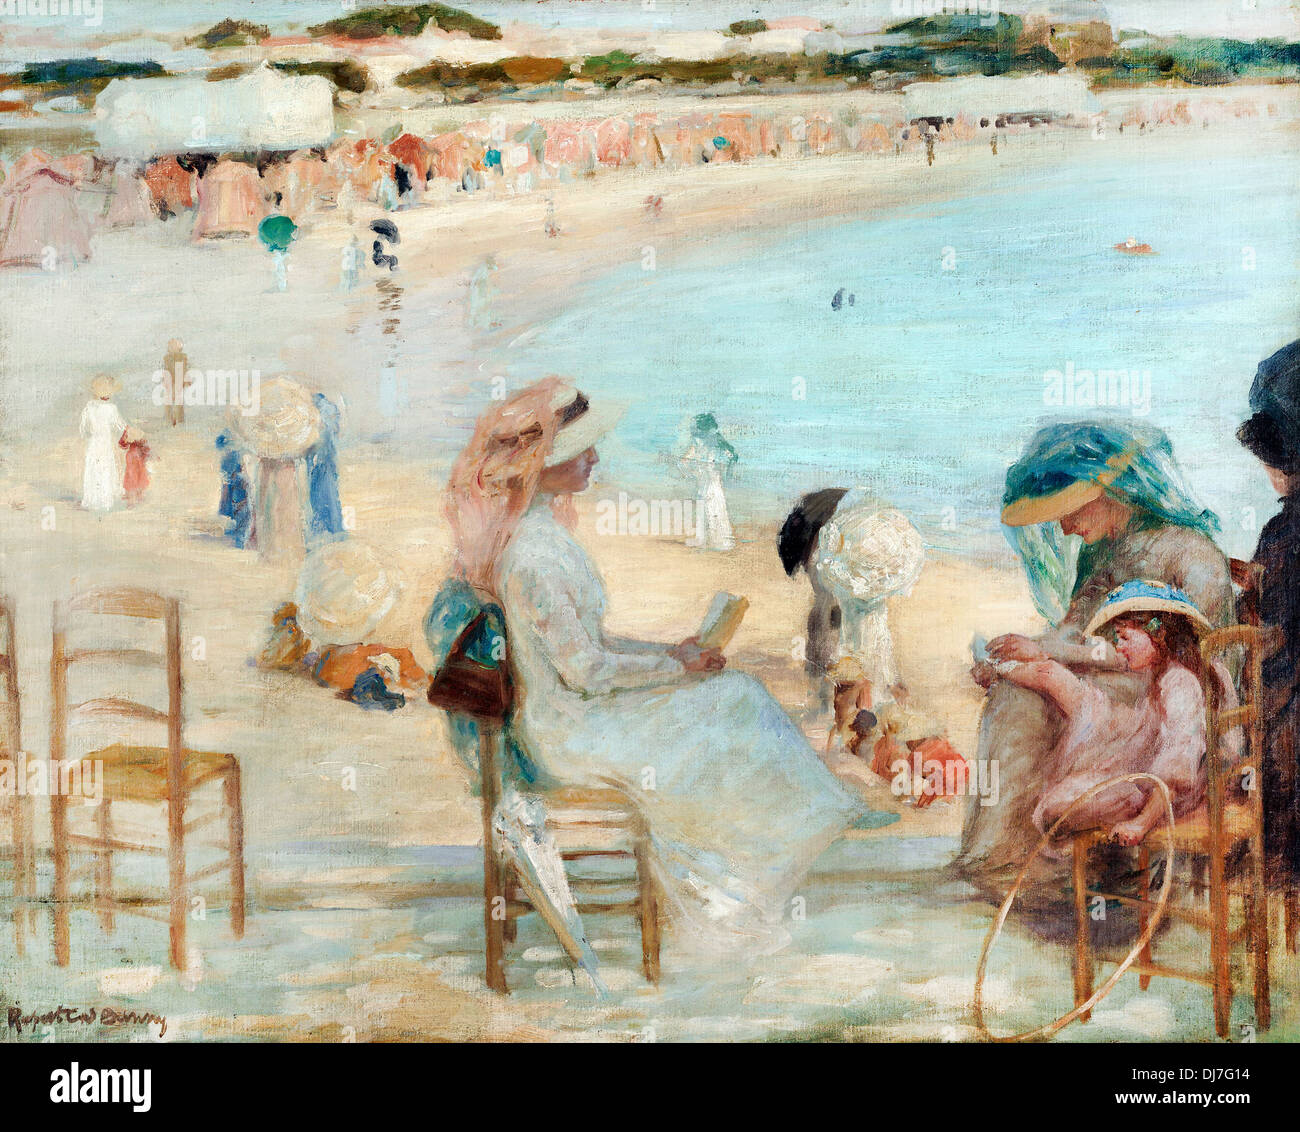 Rupert Bunny, On the beach (Royan). Circa 1908. Oil on canvas. Art Gallery of New South Wales, The Domain, Sydney, Australia. - Stock Image